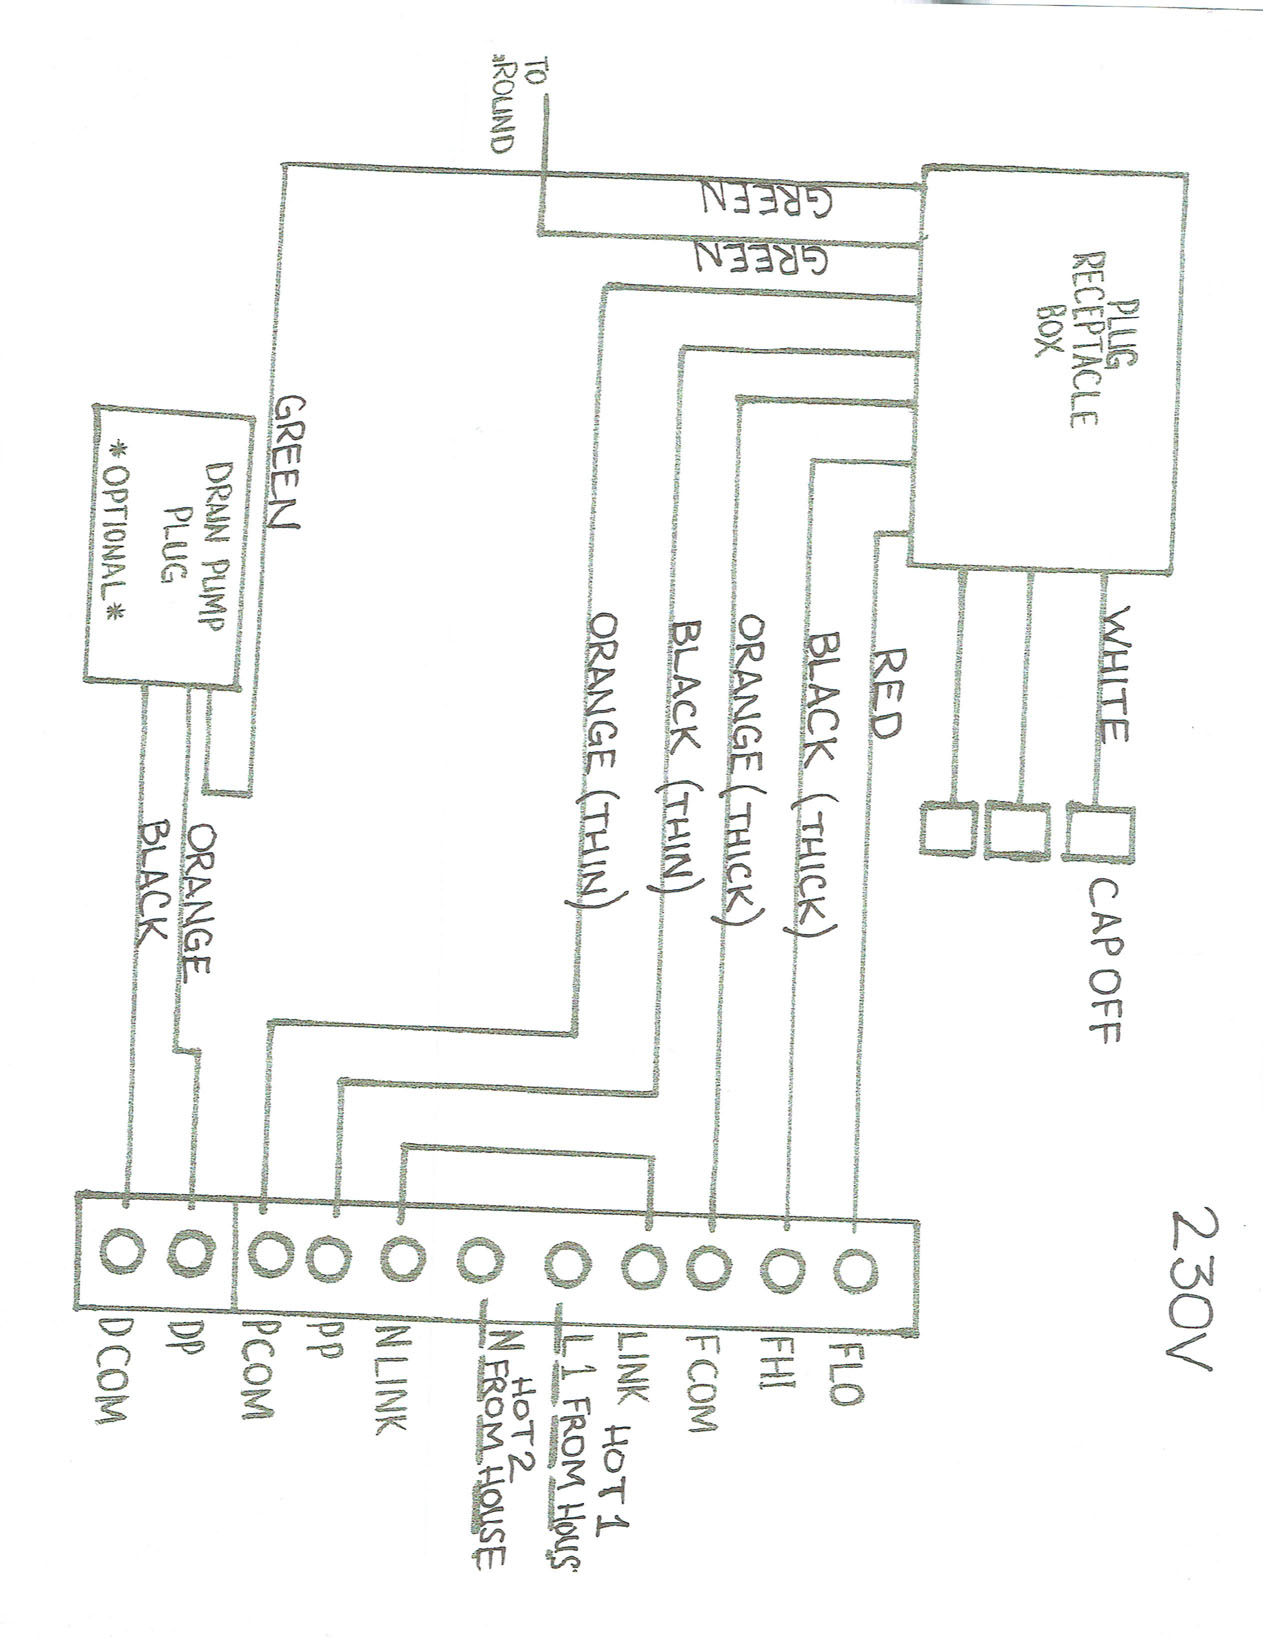 Master Flow Thermostat Wiring Diagram : 37 Wiring Diagram